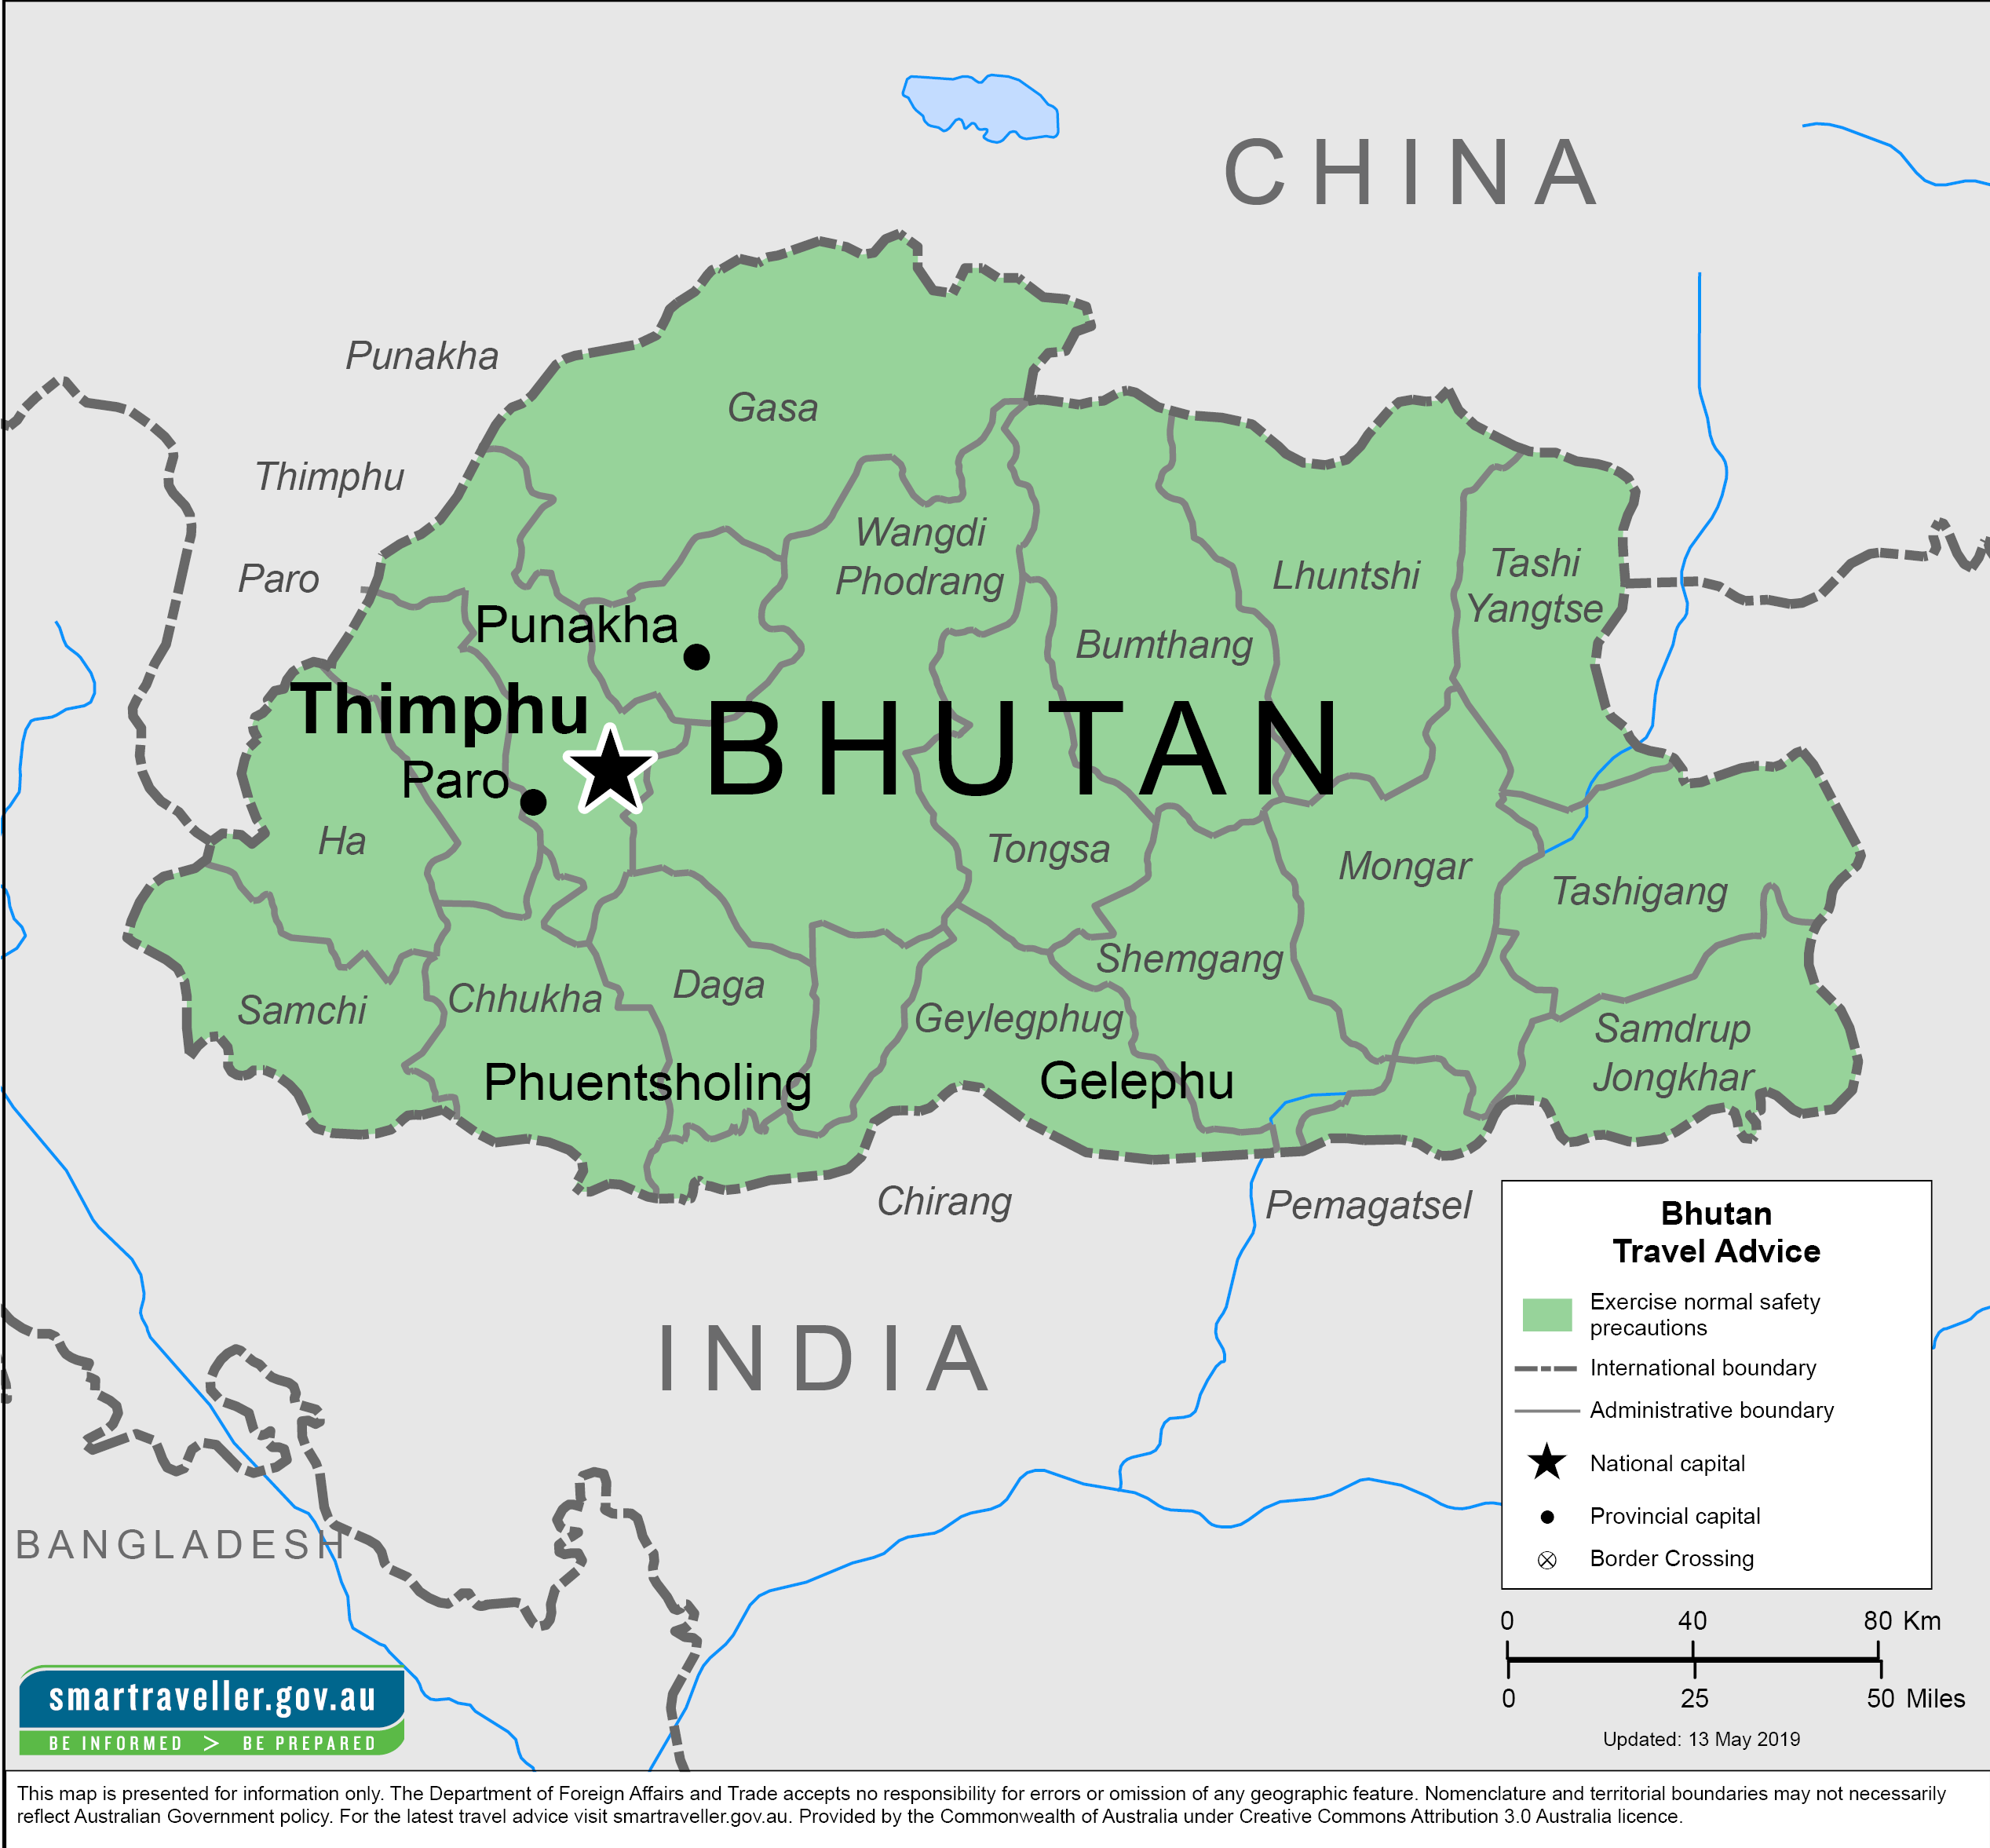 Bhutan Traveler Information - Travel Advice